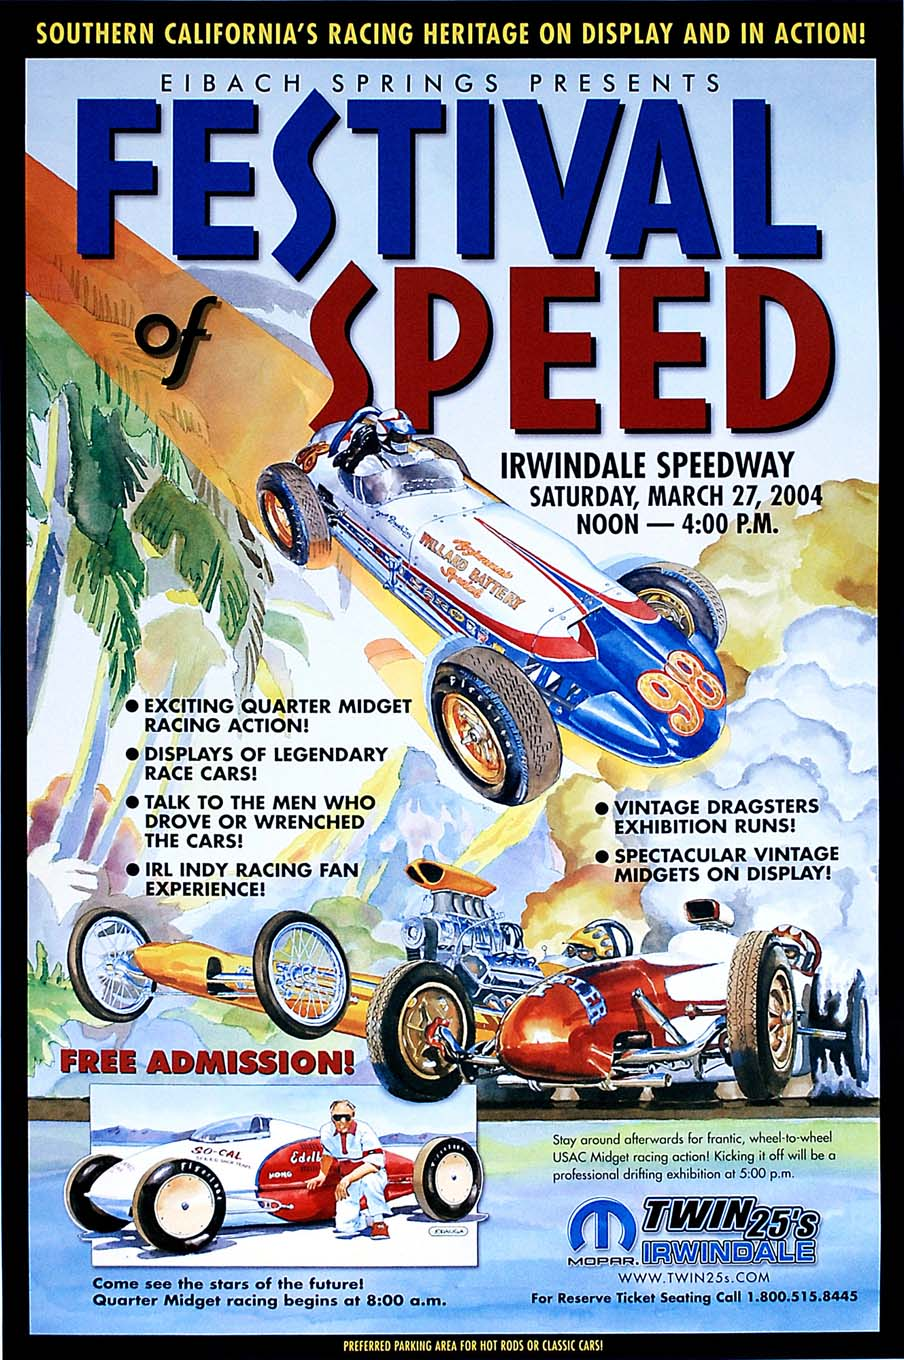 Although Jodauga's paintings have all been done by hand without the use of a computer, this illustration for Irwindale Speedway's Festival of Speed in 2004 utilized four separate pieces of artwork that were computer-composed.